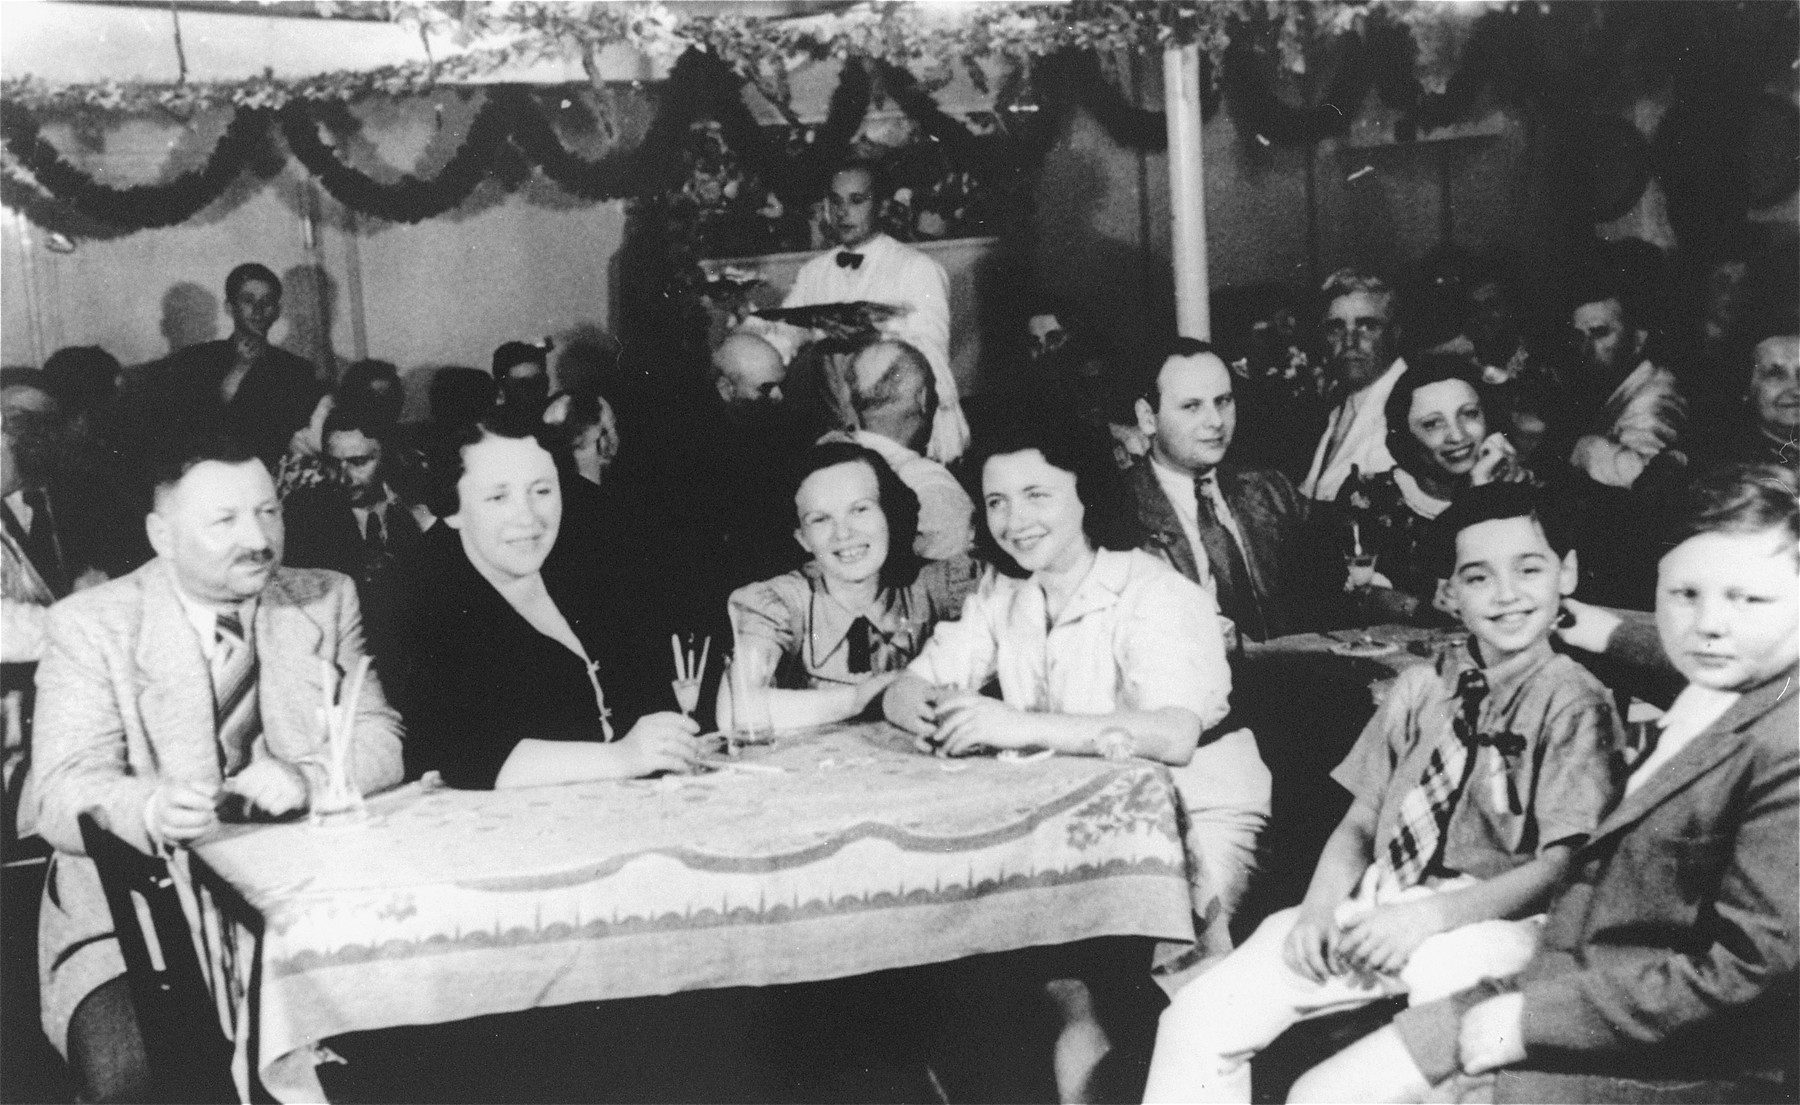 Passengers in the dining room of the MS St. Louis.    Pictured in the foreground from left to right are: Joseph Guttman, Mrs.Guttman, Ilse Karliner, Rose Guttman, Henry Goldstein (Gallant), Harry Guttman.  Behind, at the right, are Alfred and Sophie Aron.